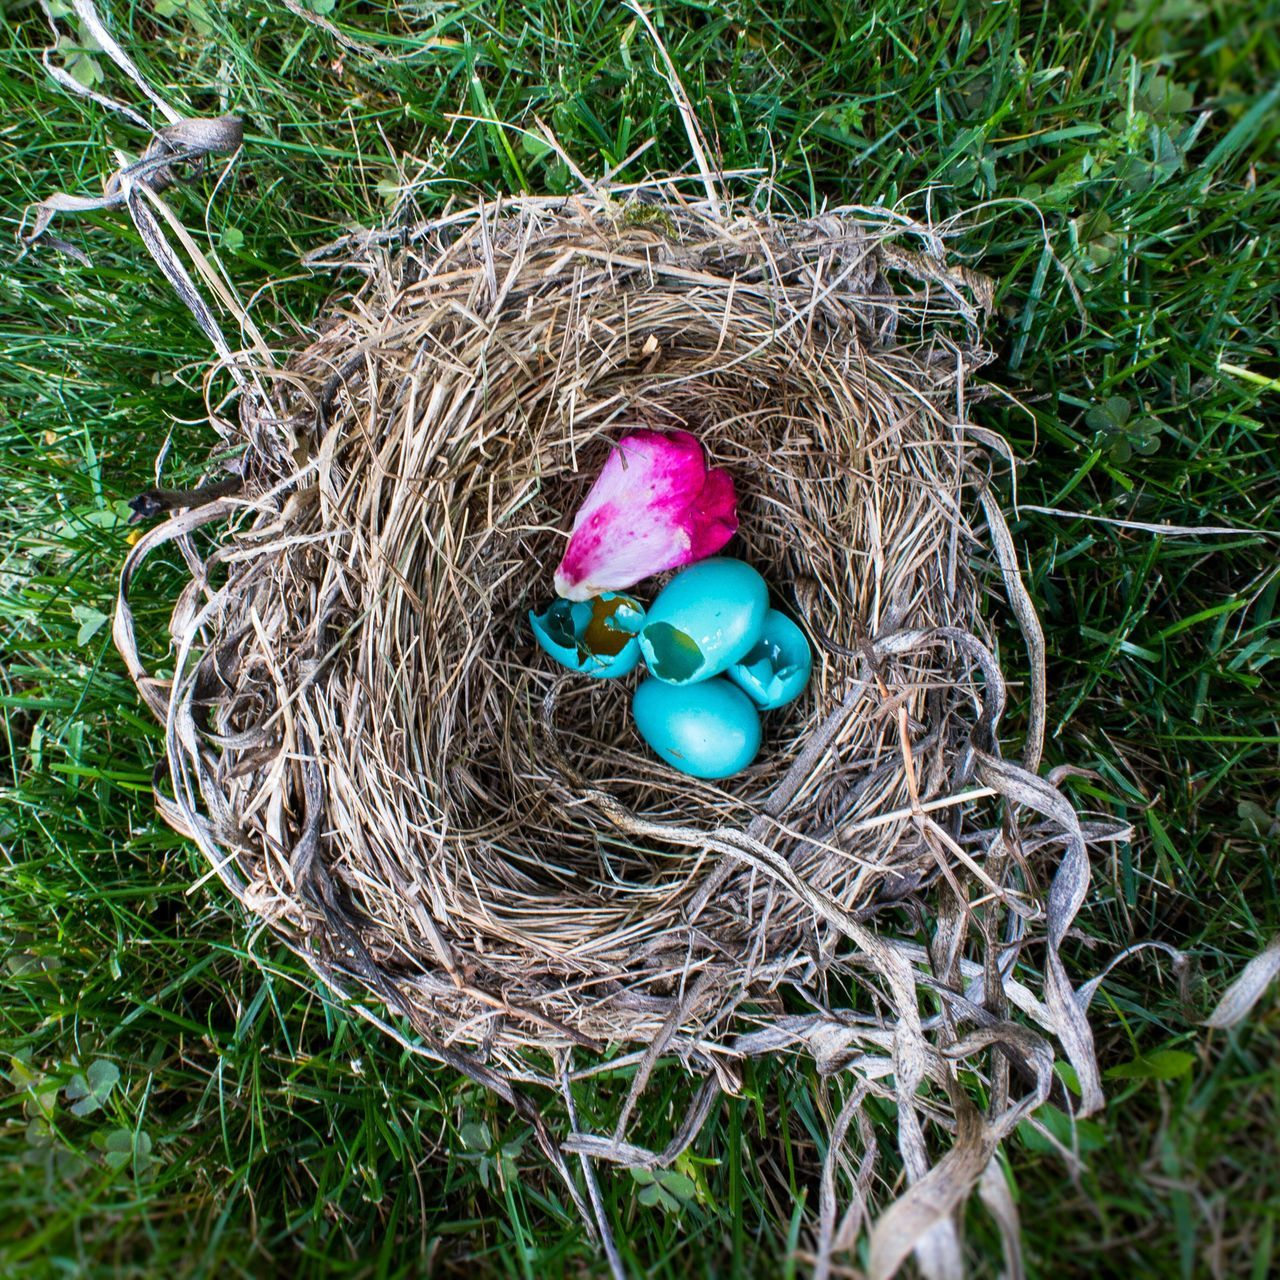 Bird's Nest. Animal Nest High Angle View New Life Bird Nest Beginnings Egg Grass No People Outdoors Fragility Close-up Robin Nature Day